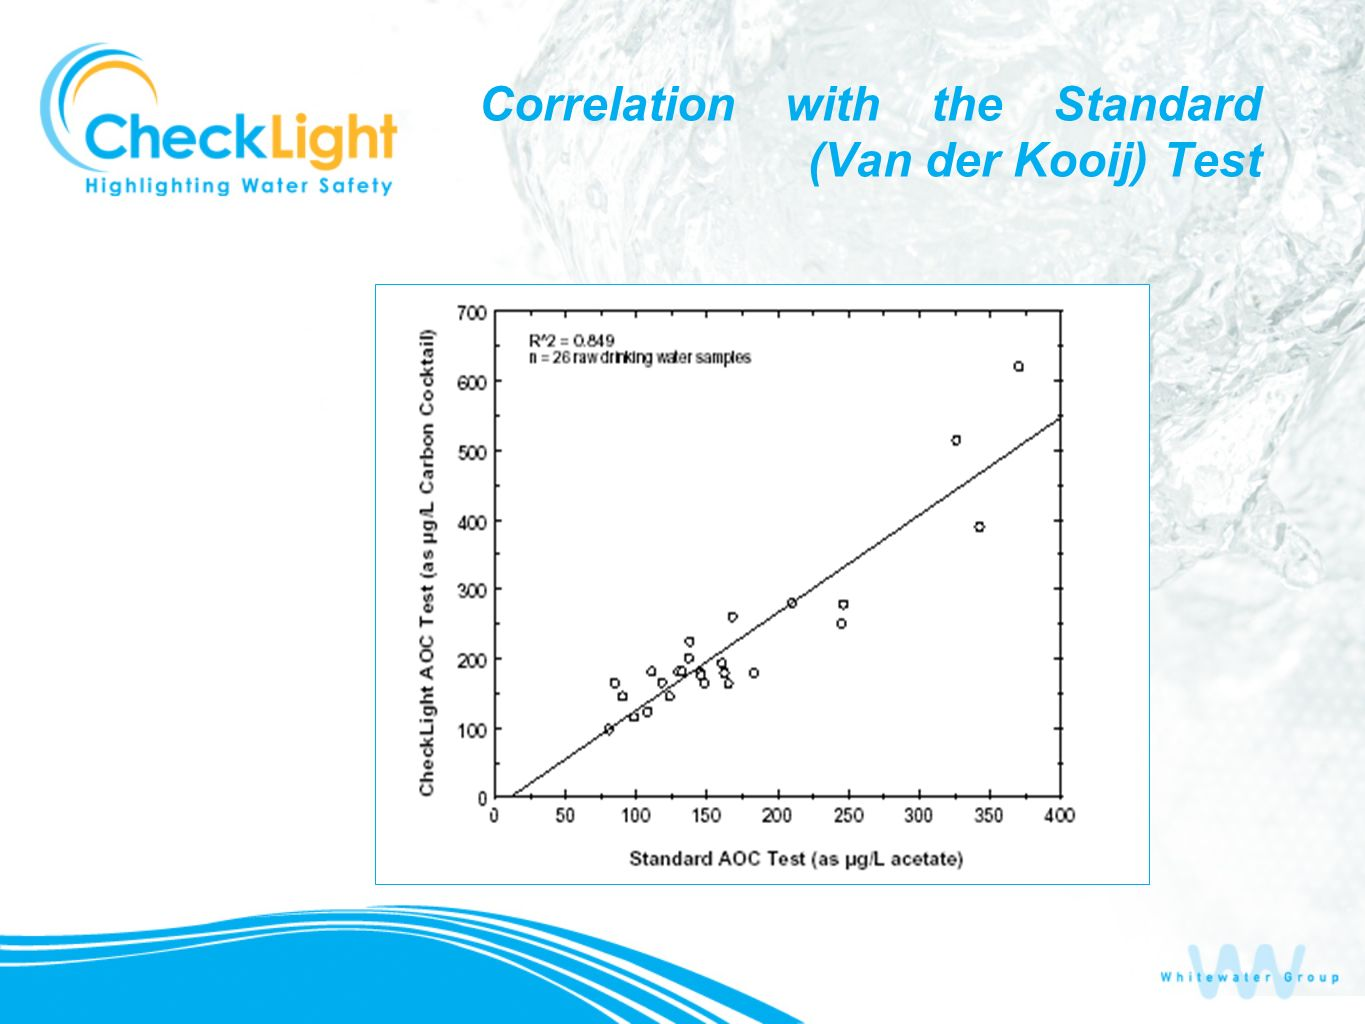 Correlation with the Standard (Van der Kooij) Test